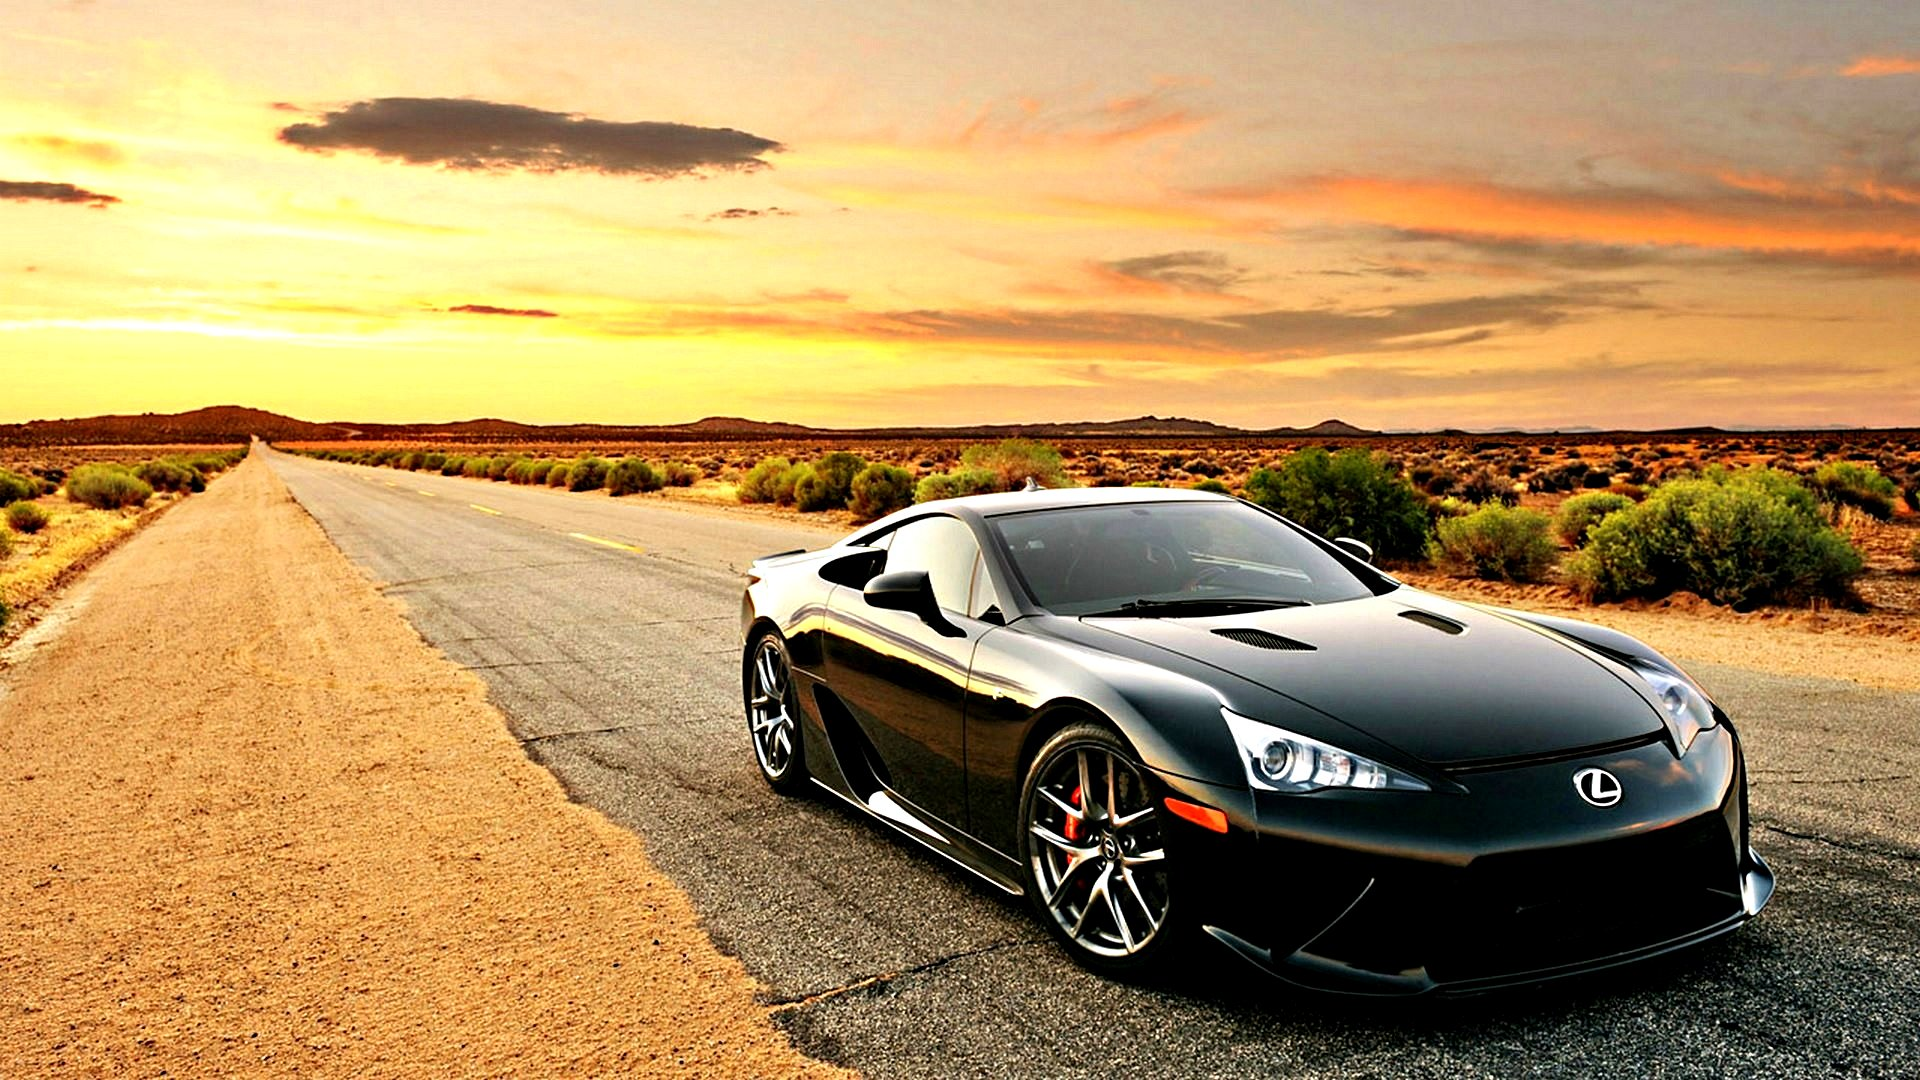 wallpapers lexus lfa - photo #10